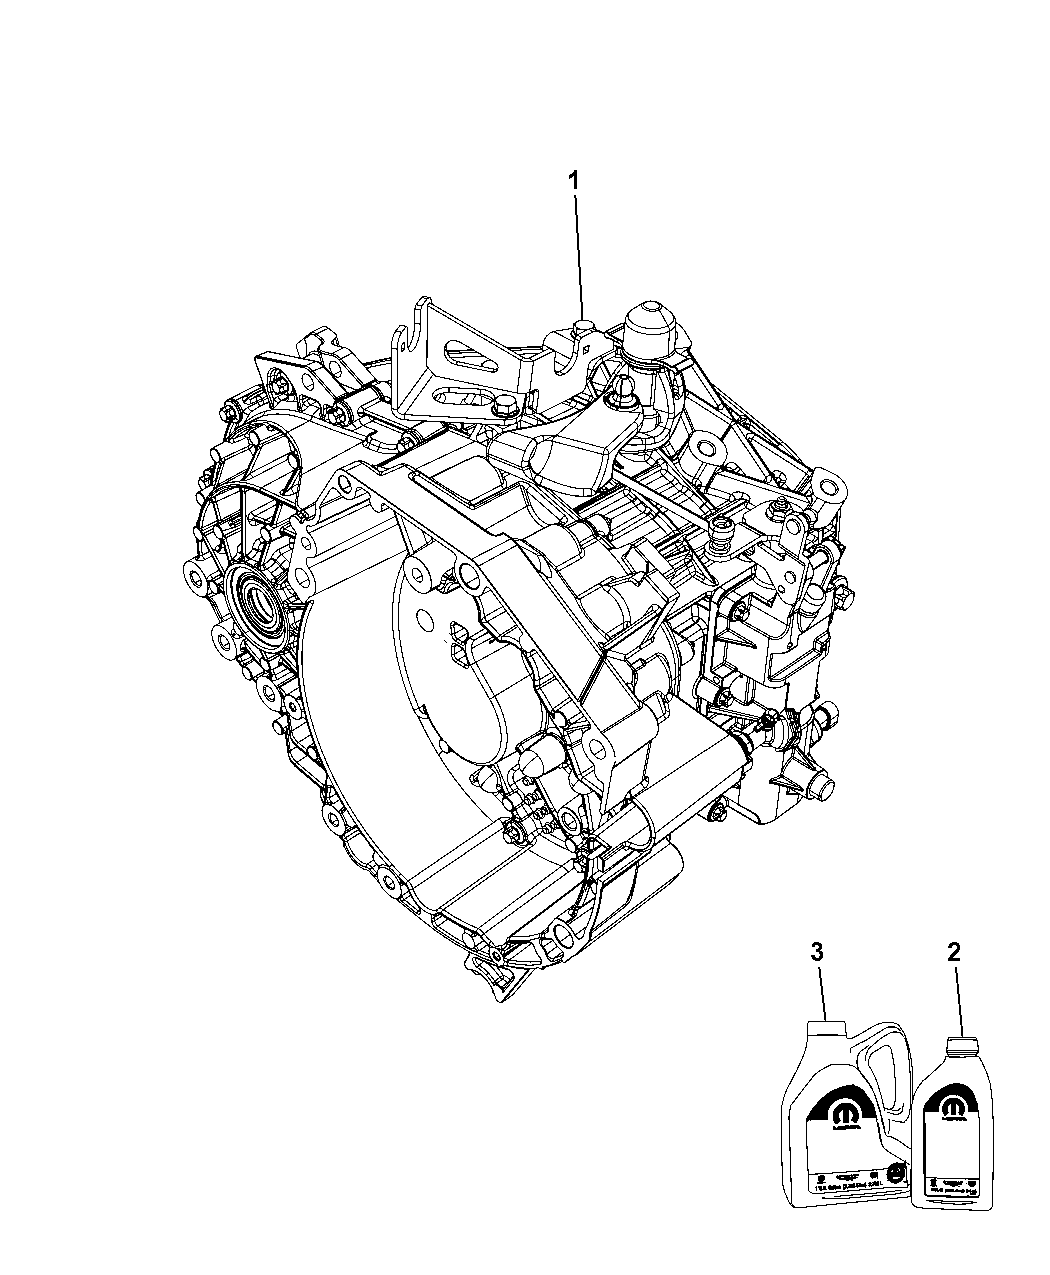 2013 Dodge Dart Transmission / Transaxle Assembly of